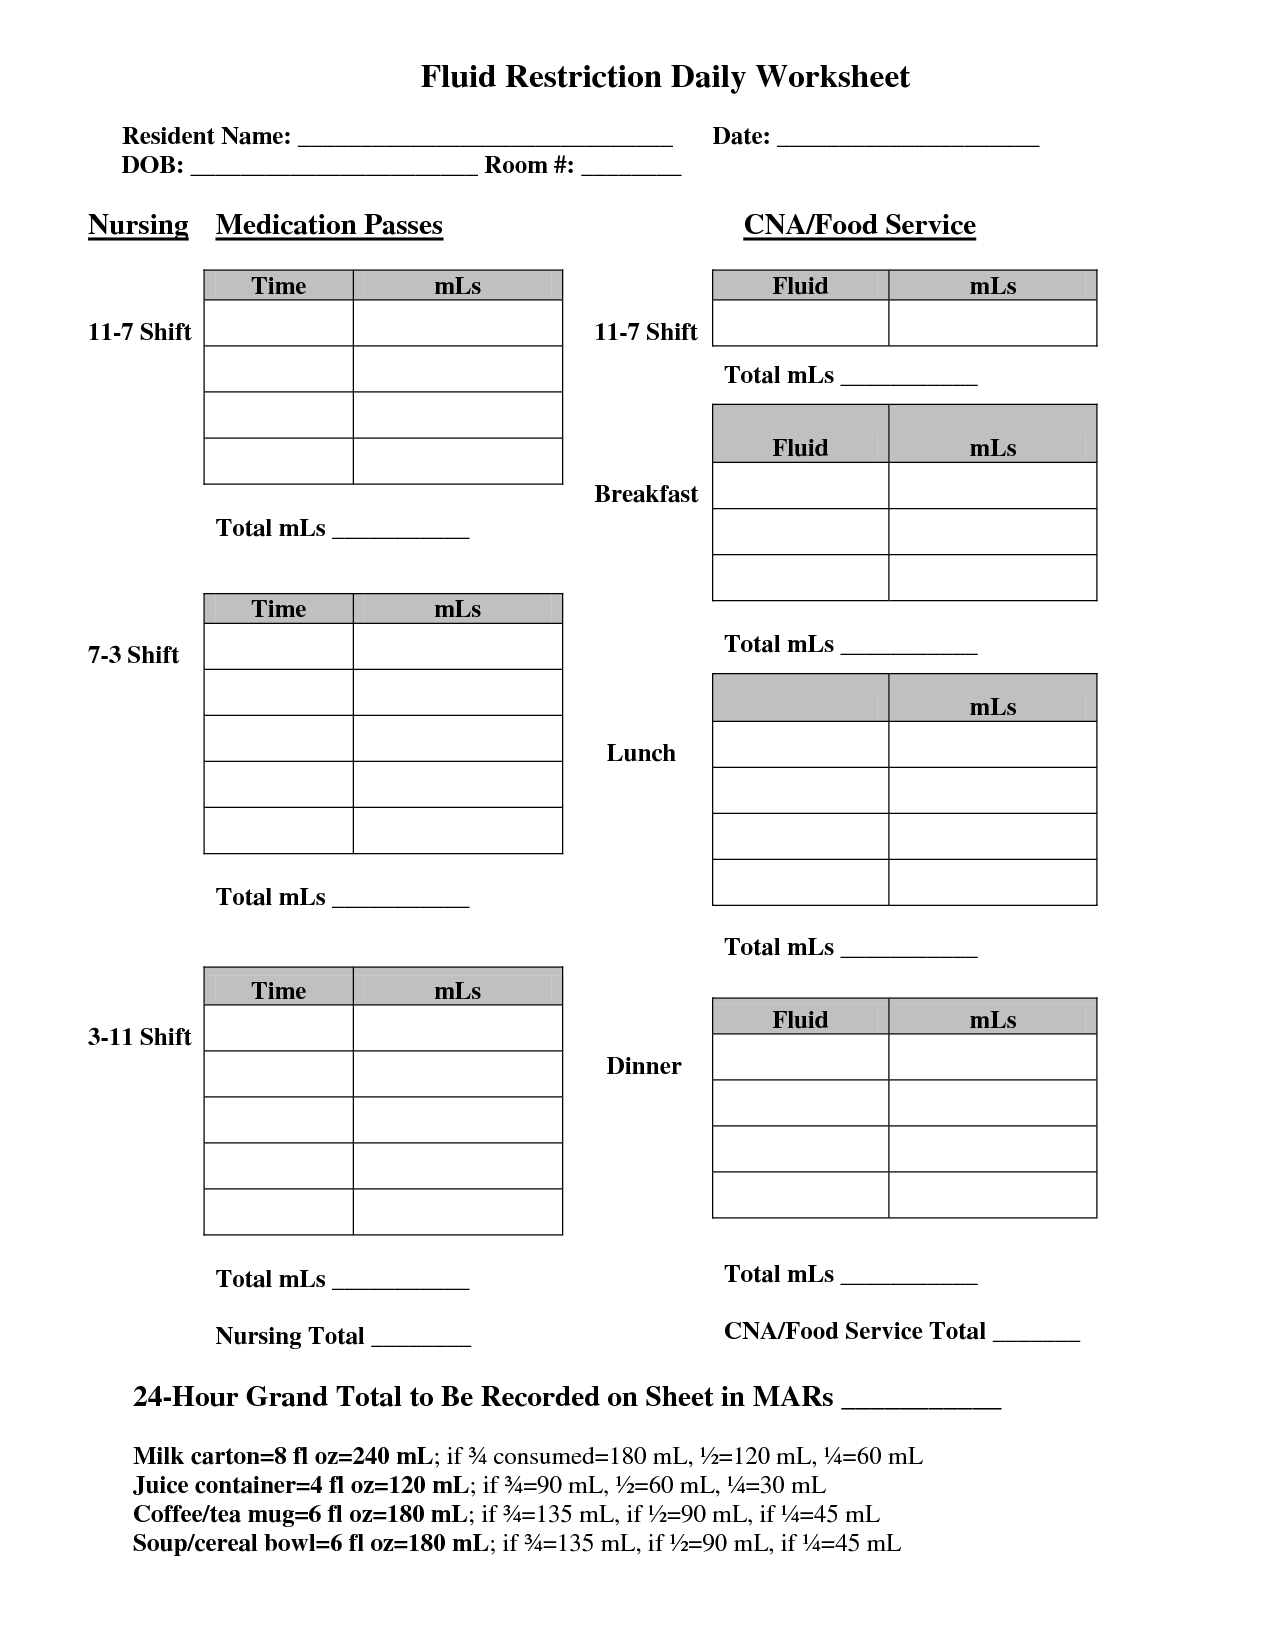 Charge Nurse Worksheet